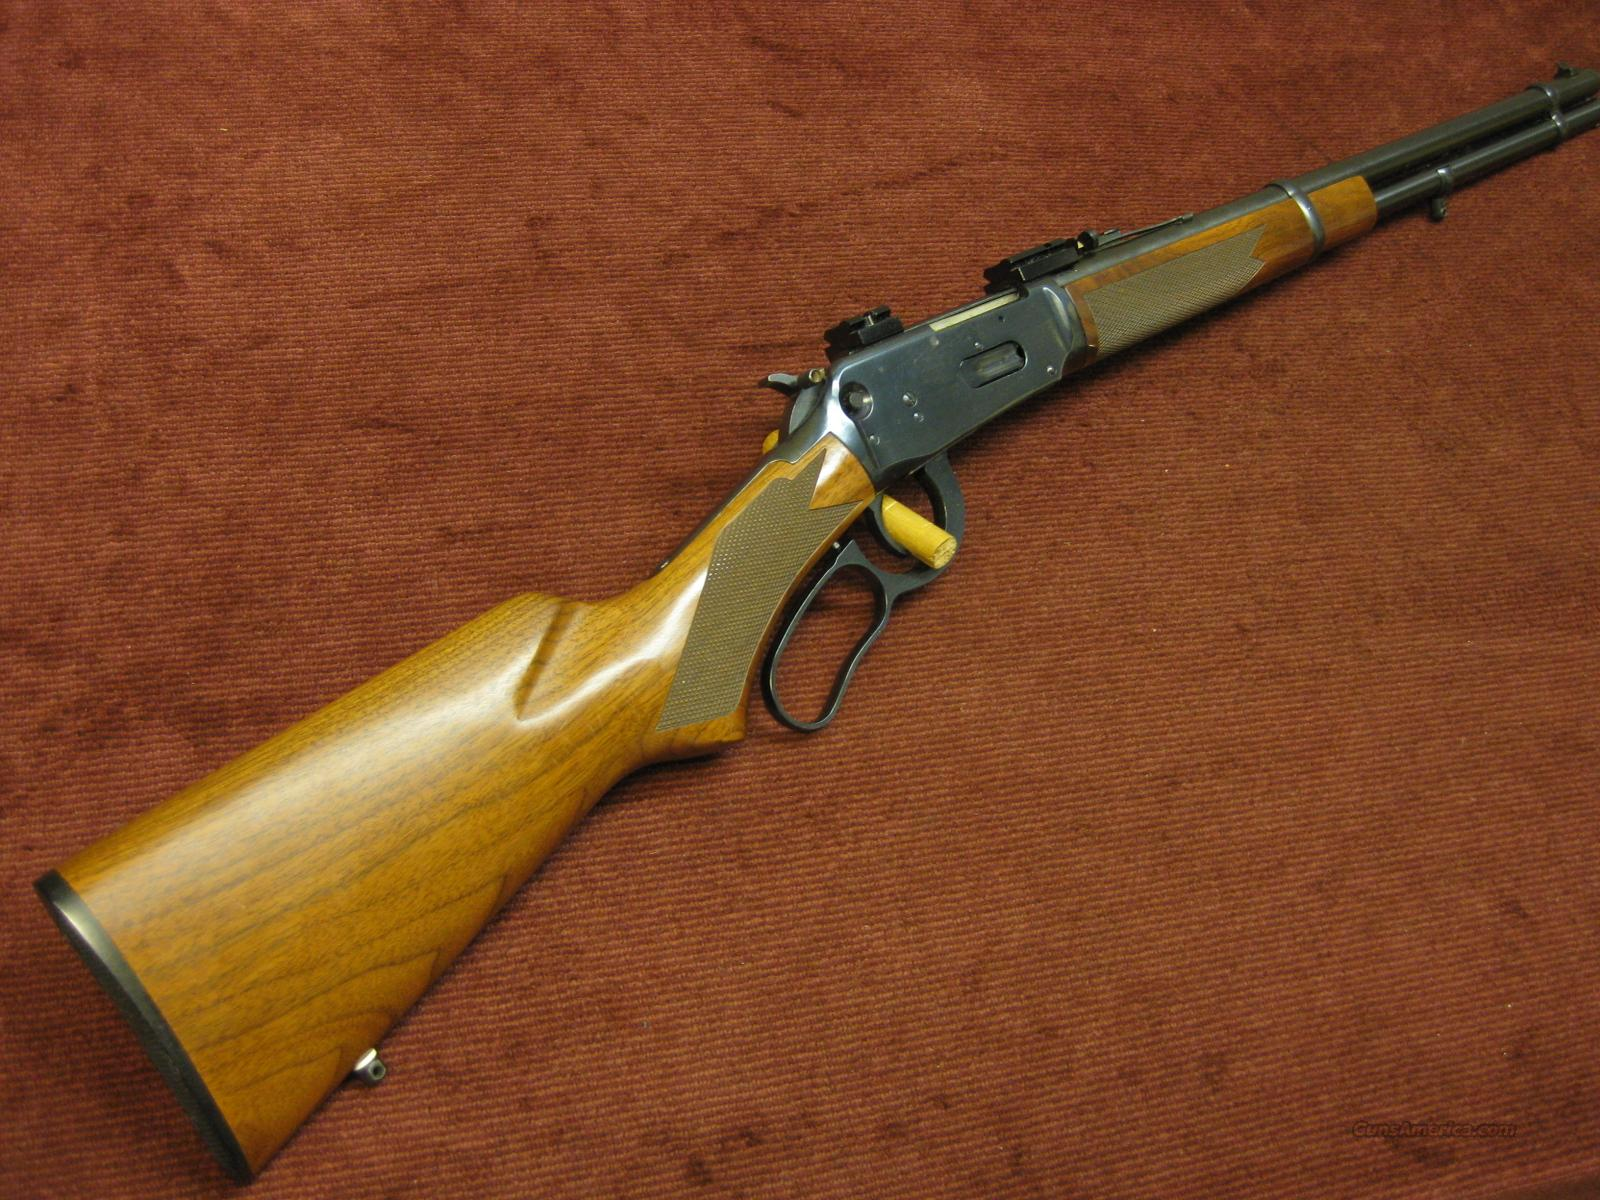 WINCHESTER MODEL 94AE .44 MAG - 20-INCH BARREL - EXCELLENT !  Guns > Rifles > Winchester Rifles - Modern Lever > Model 94 > Post-64